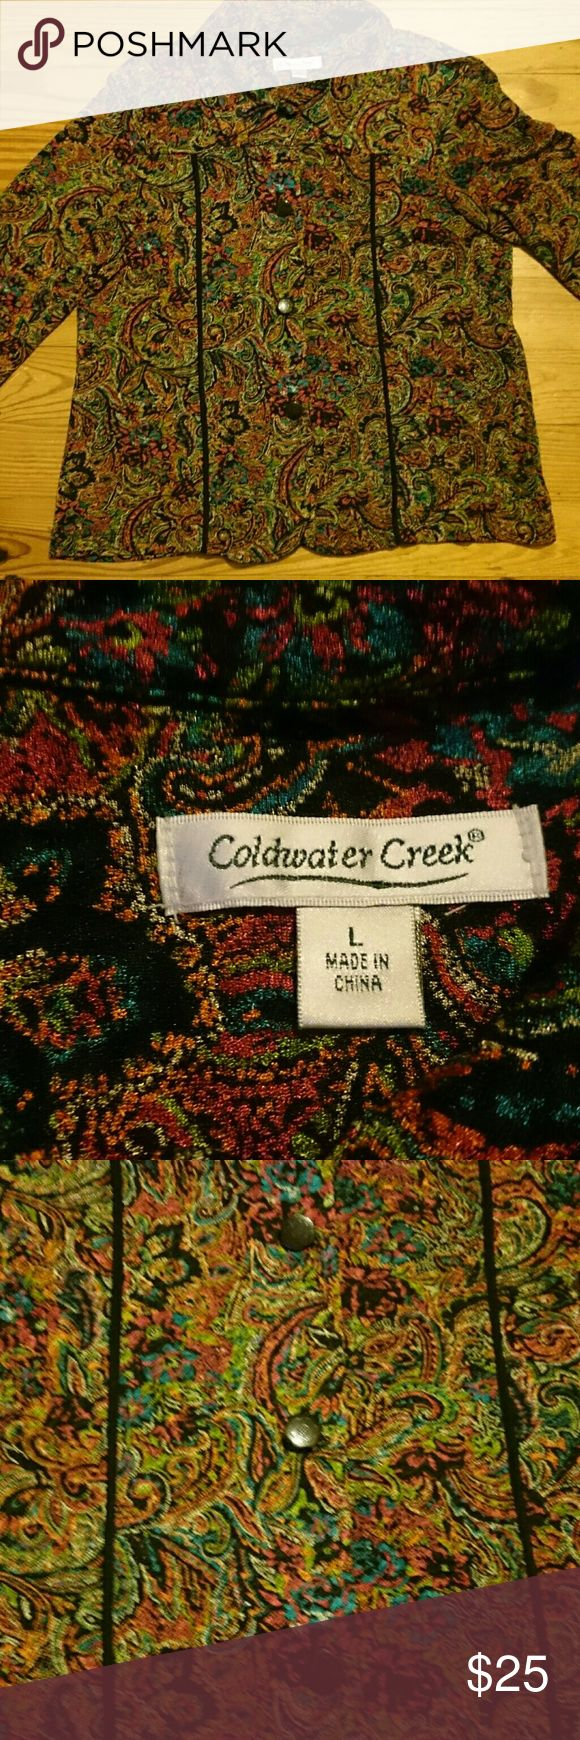 Coldwater creek button down jacket Beautiful fall colors new without tags Coldwater Creek Jackets & Coats Blazers #downjacket